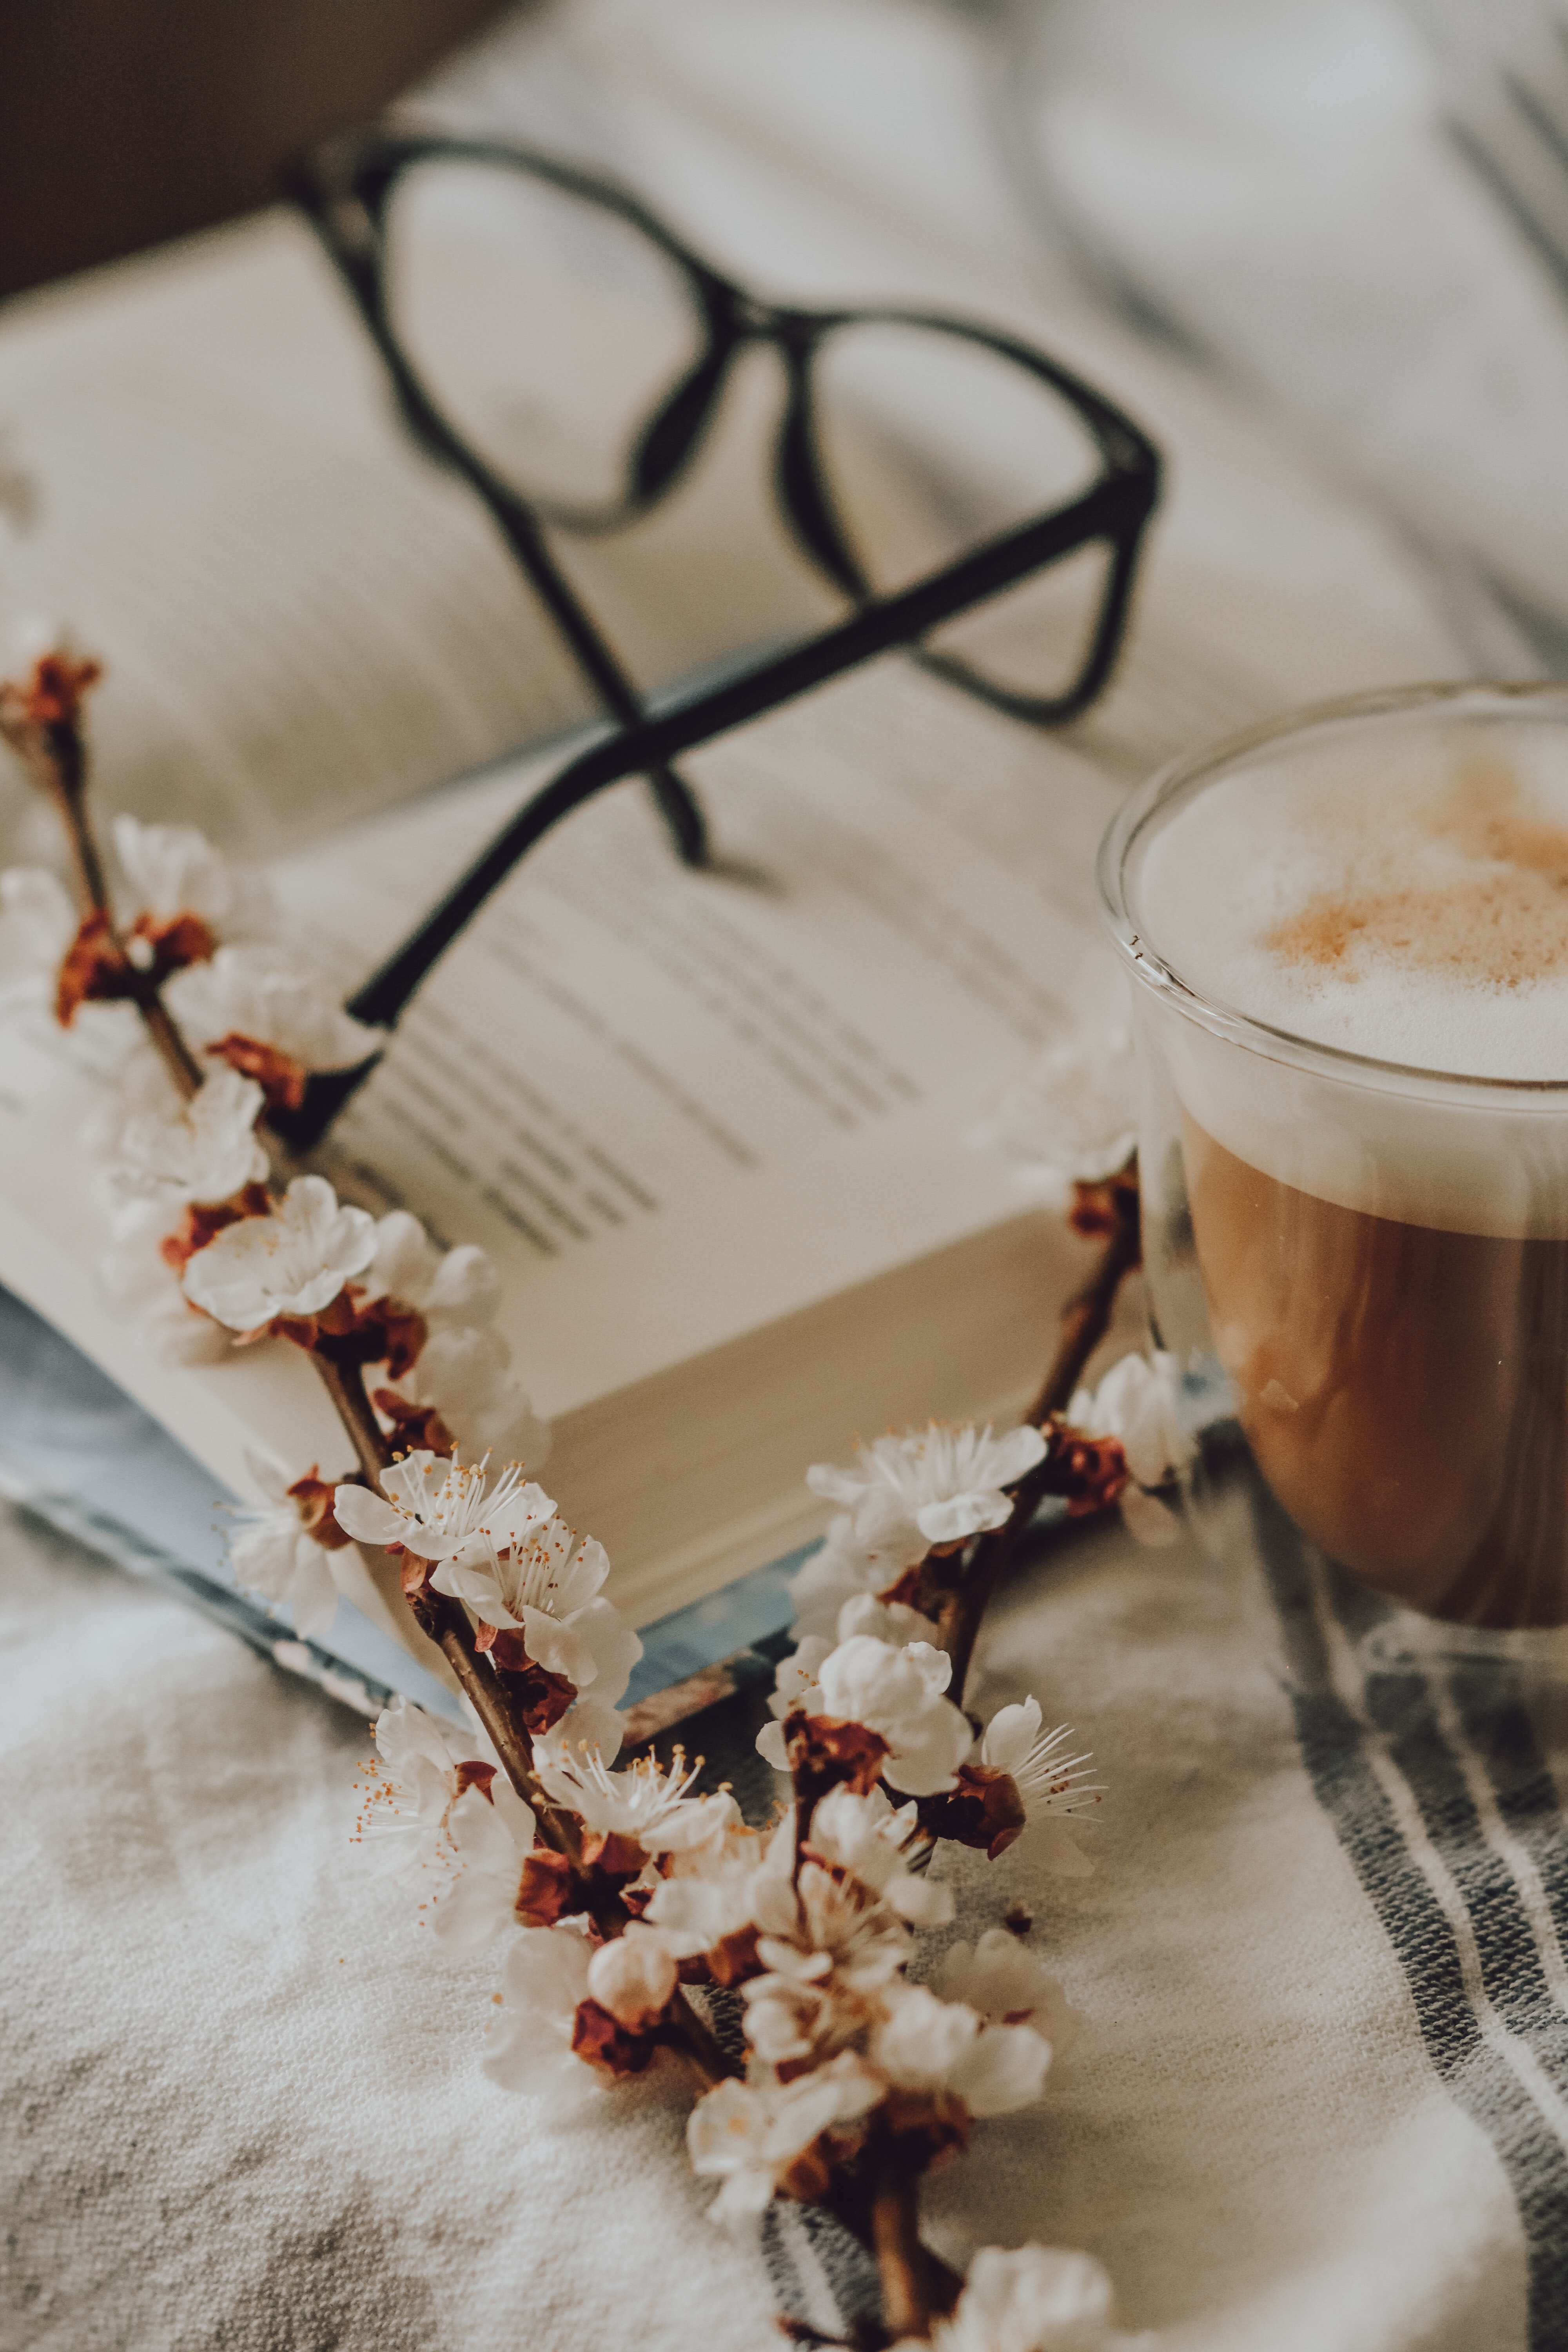 102035 download wallpaper Miscellanea, Miscellaneous, Branch, Bloom, Flowering, Coffee, Glasses, Spectacles, Still Life screensavers and pictures for free